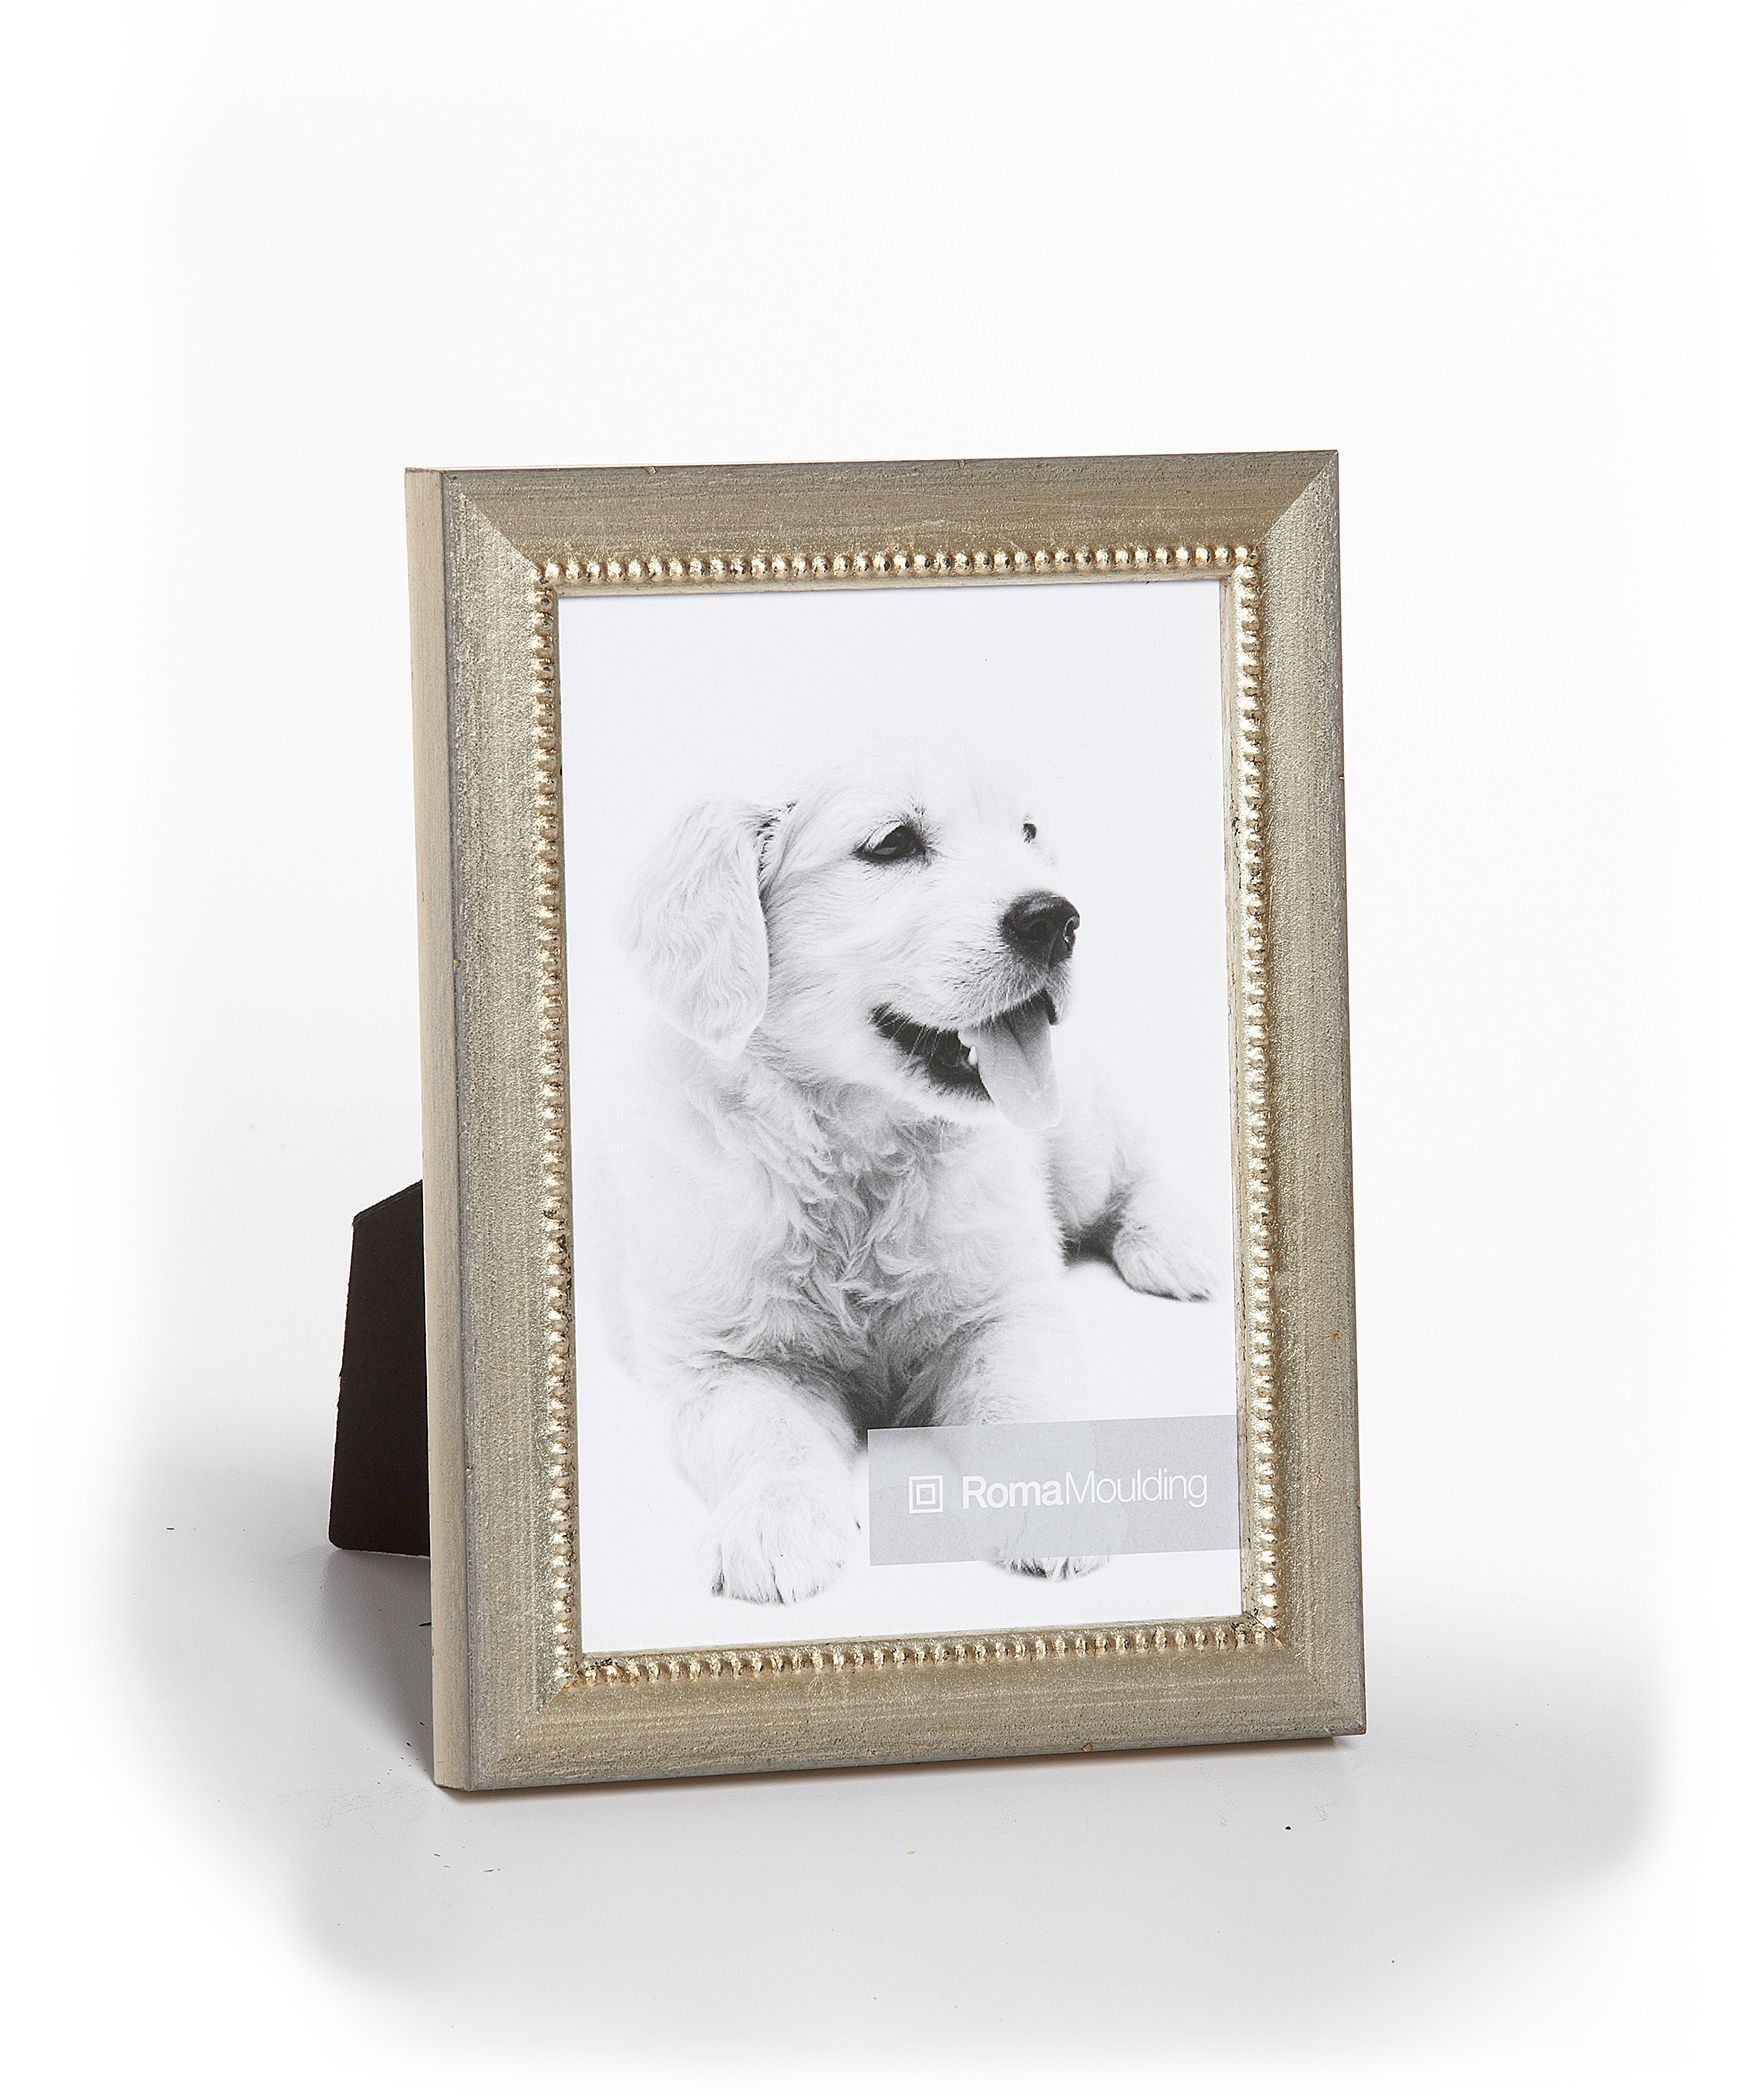 1862054 Palio 3 4 Quot Cool Silver Roma Photo Frame